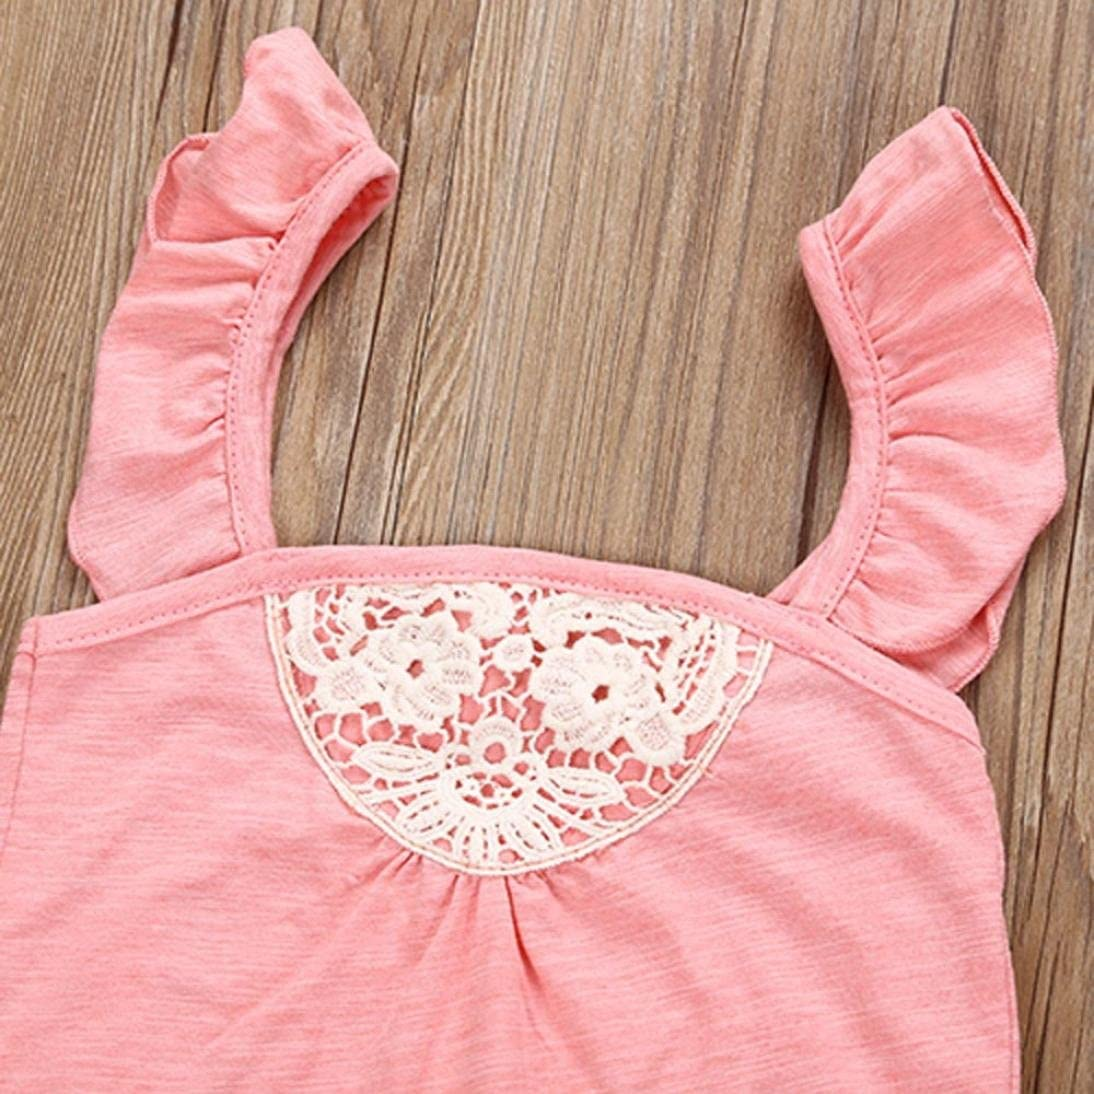 YJM Baby Clothes Toddler Baby Girls Outfit Clothes Lace Romper Jumpsuit+Floral Short Pants 1Set